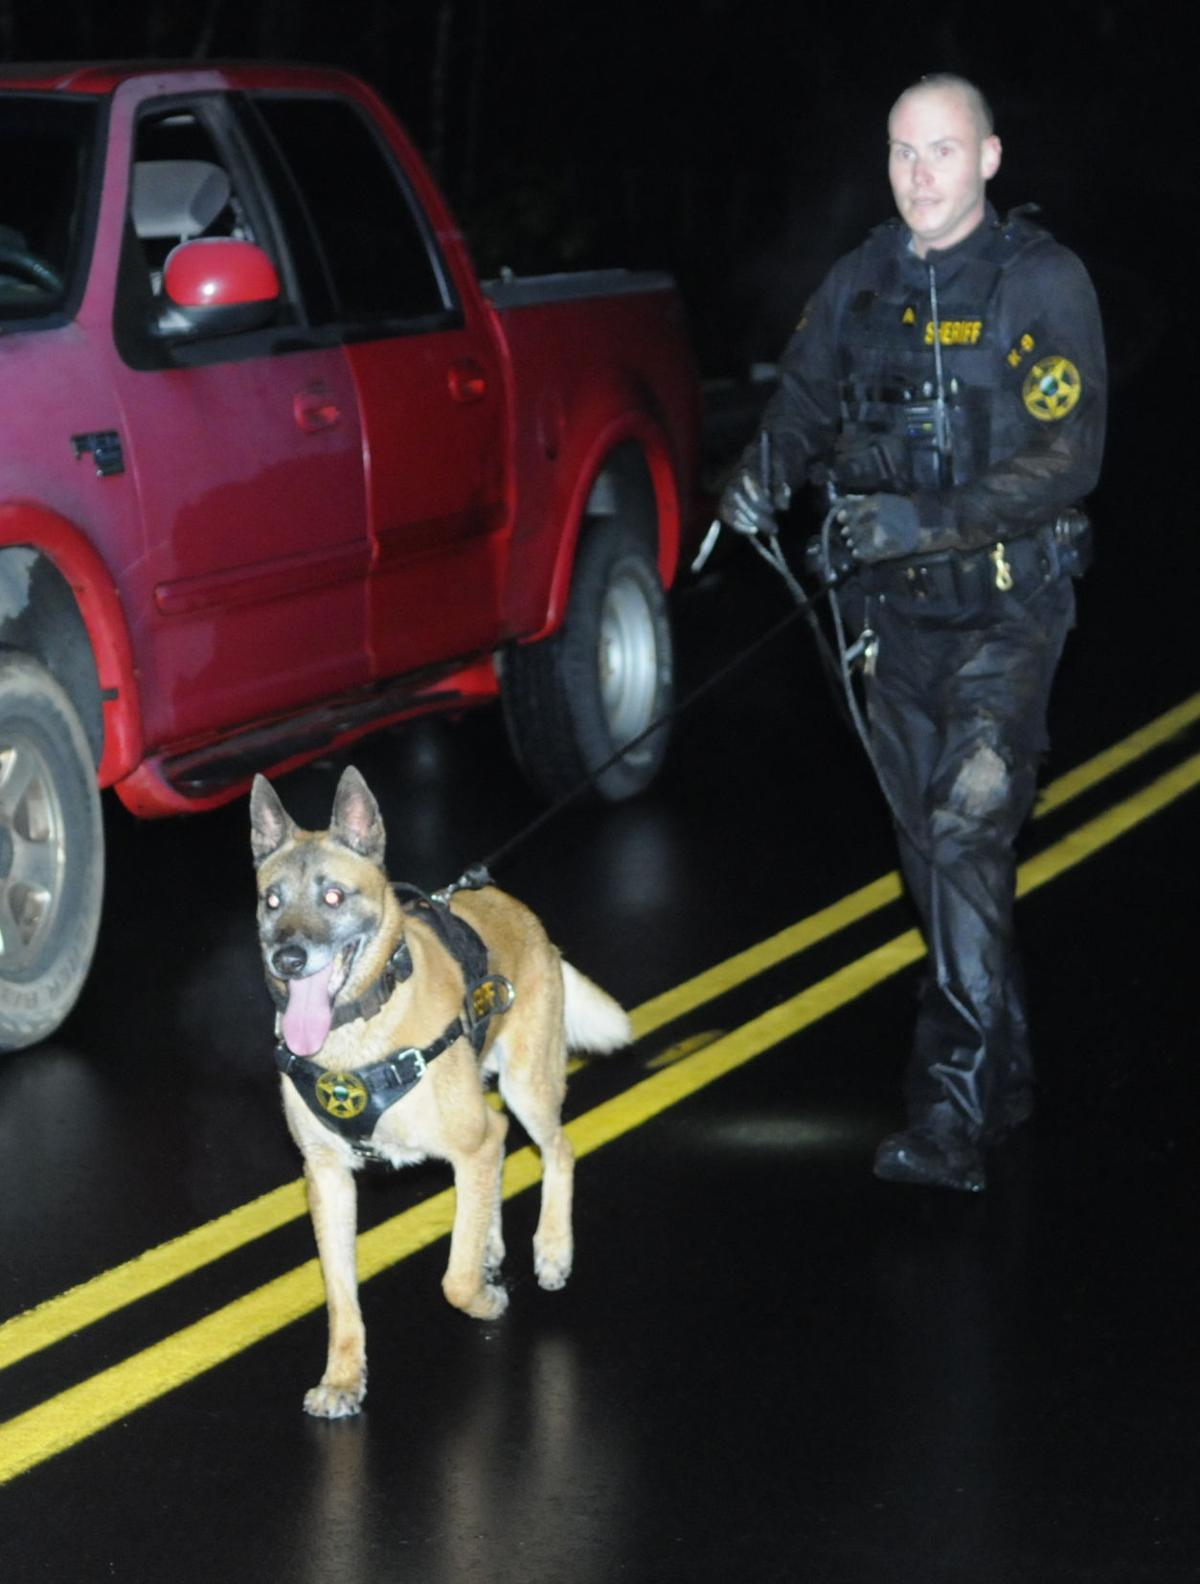 Search dog found suspect